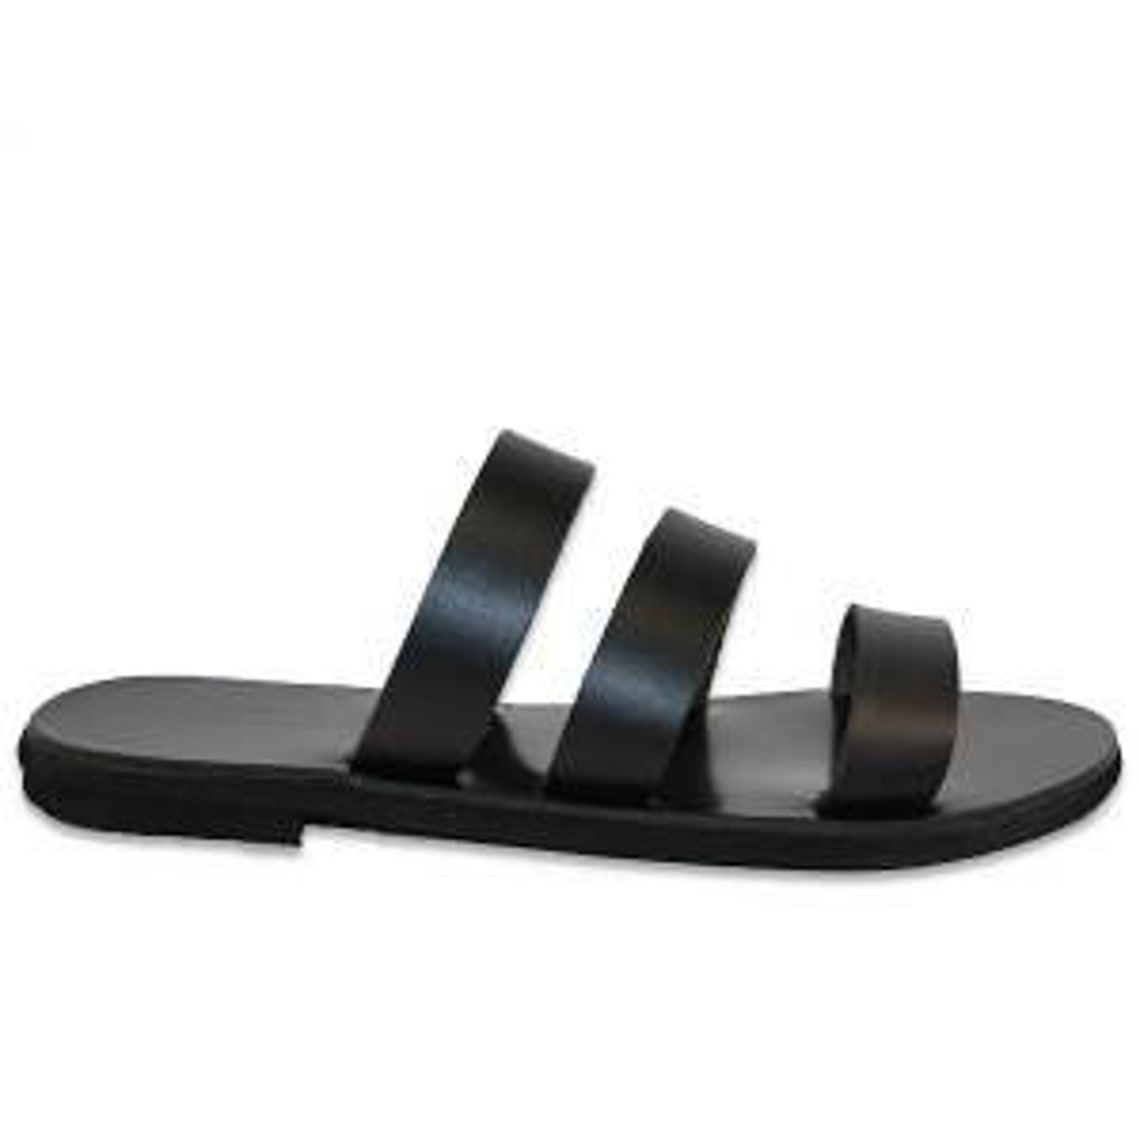 Leather Handmade Greek Sandals Black - Big Sale YITcW